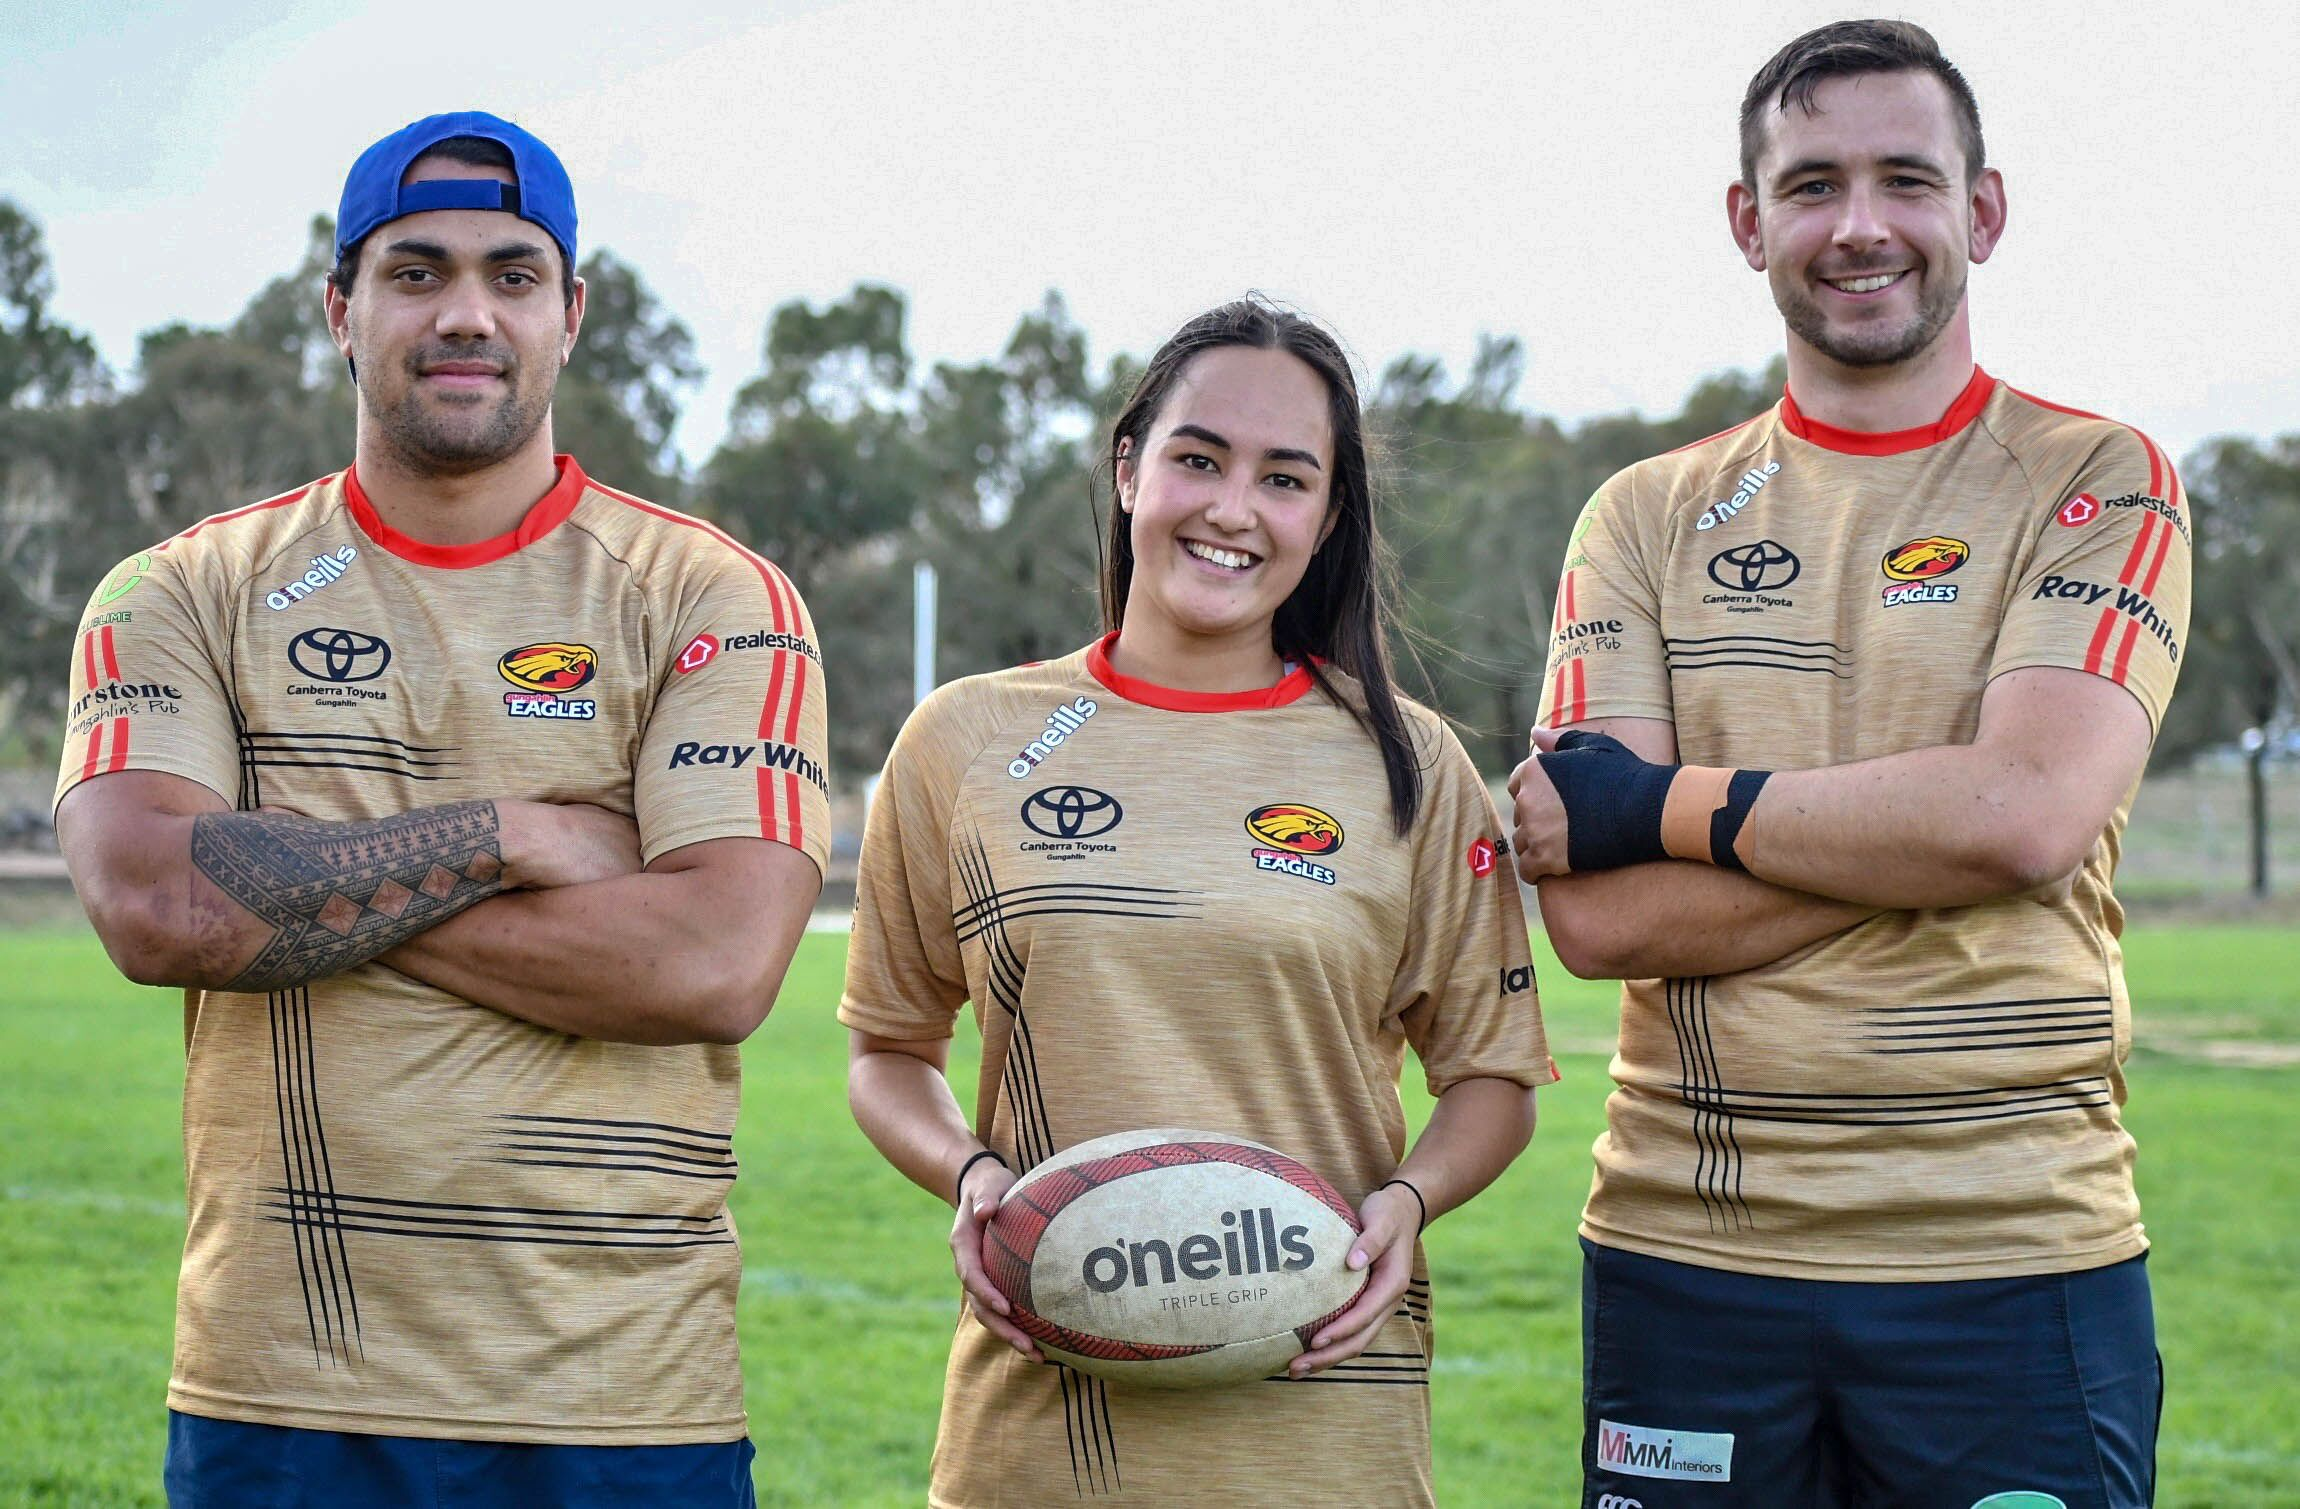 Gungahlin Eagles Club Captains 2020 Stuart Crew, Shaneqwa Lee-Edwards, and Jamie Kotz